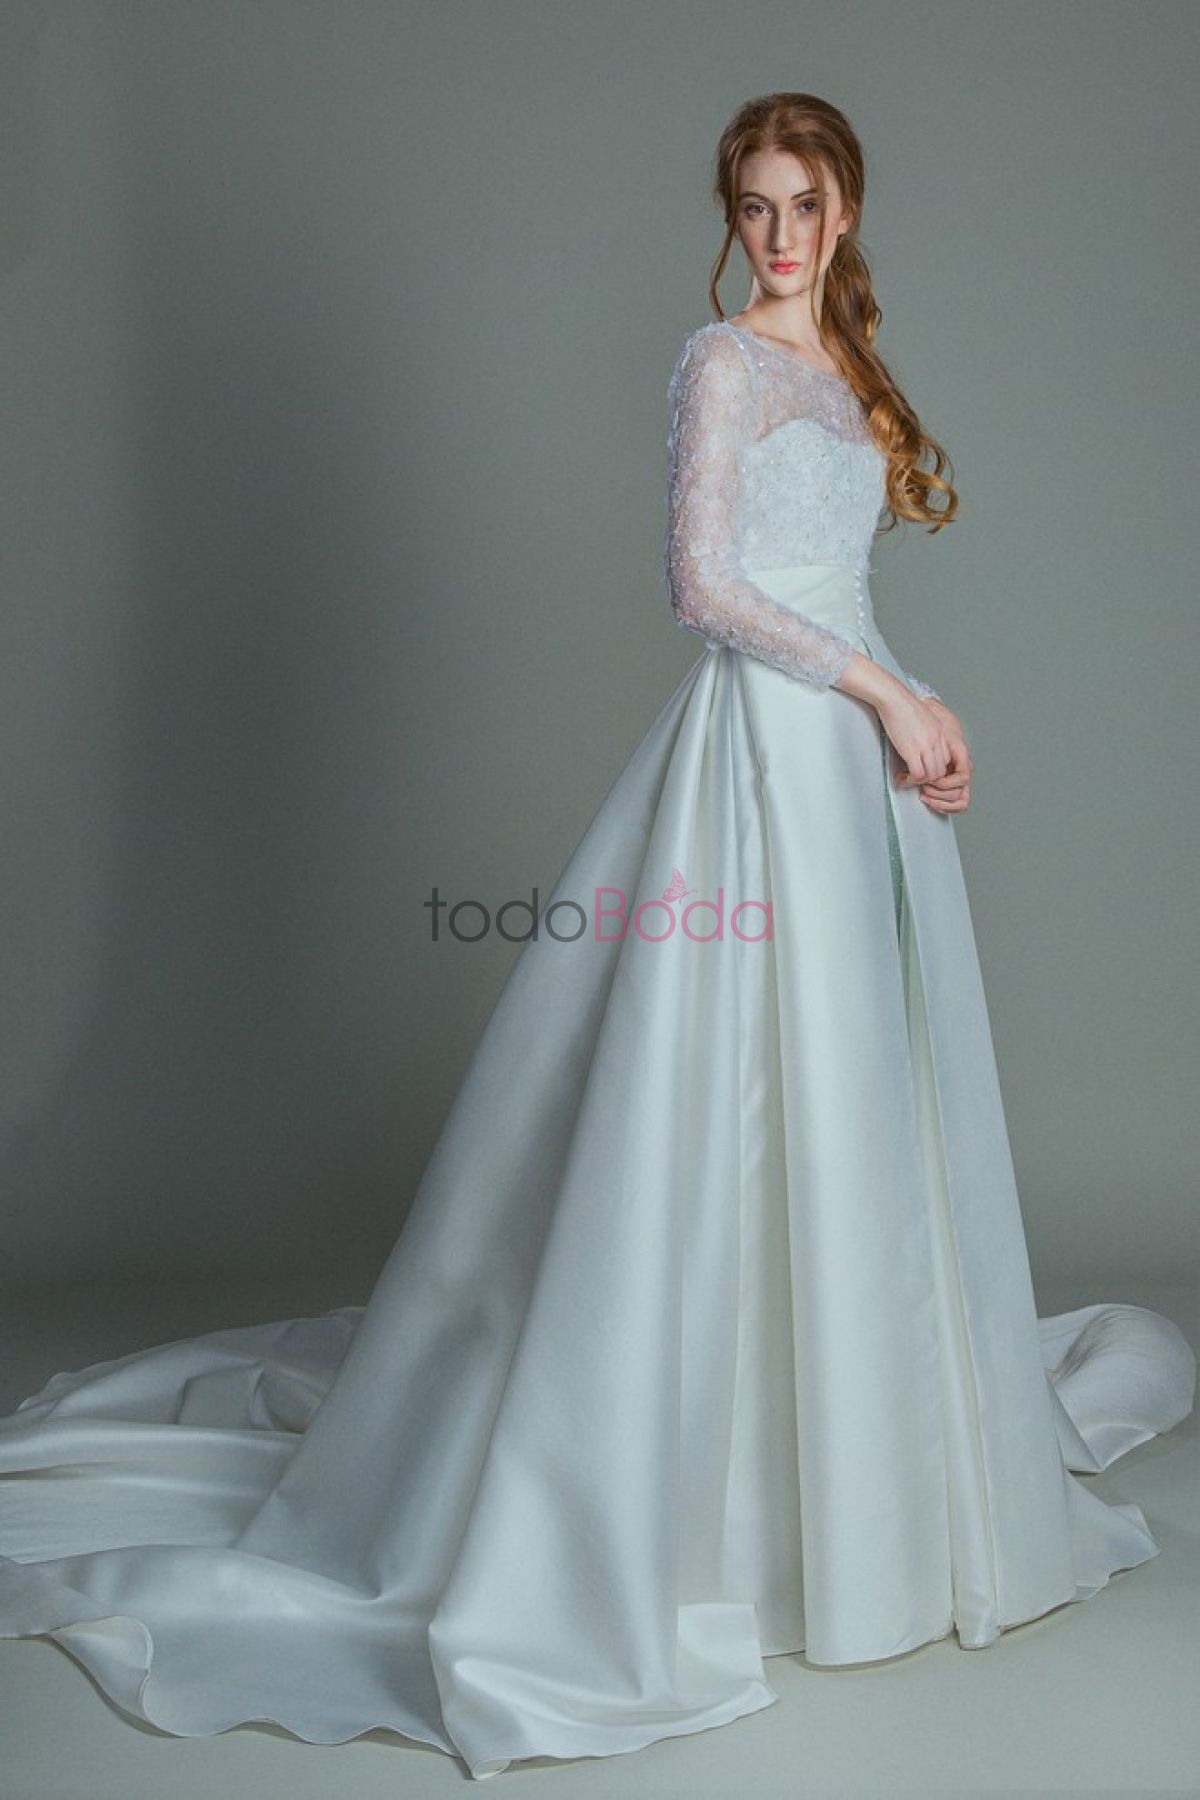 Old Fashioned Vestido Novia Griega Gift - Womens Dresses & Gowns ...